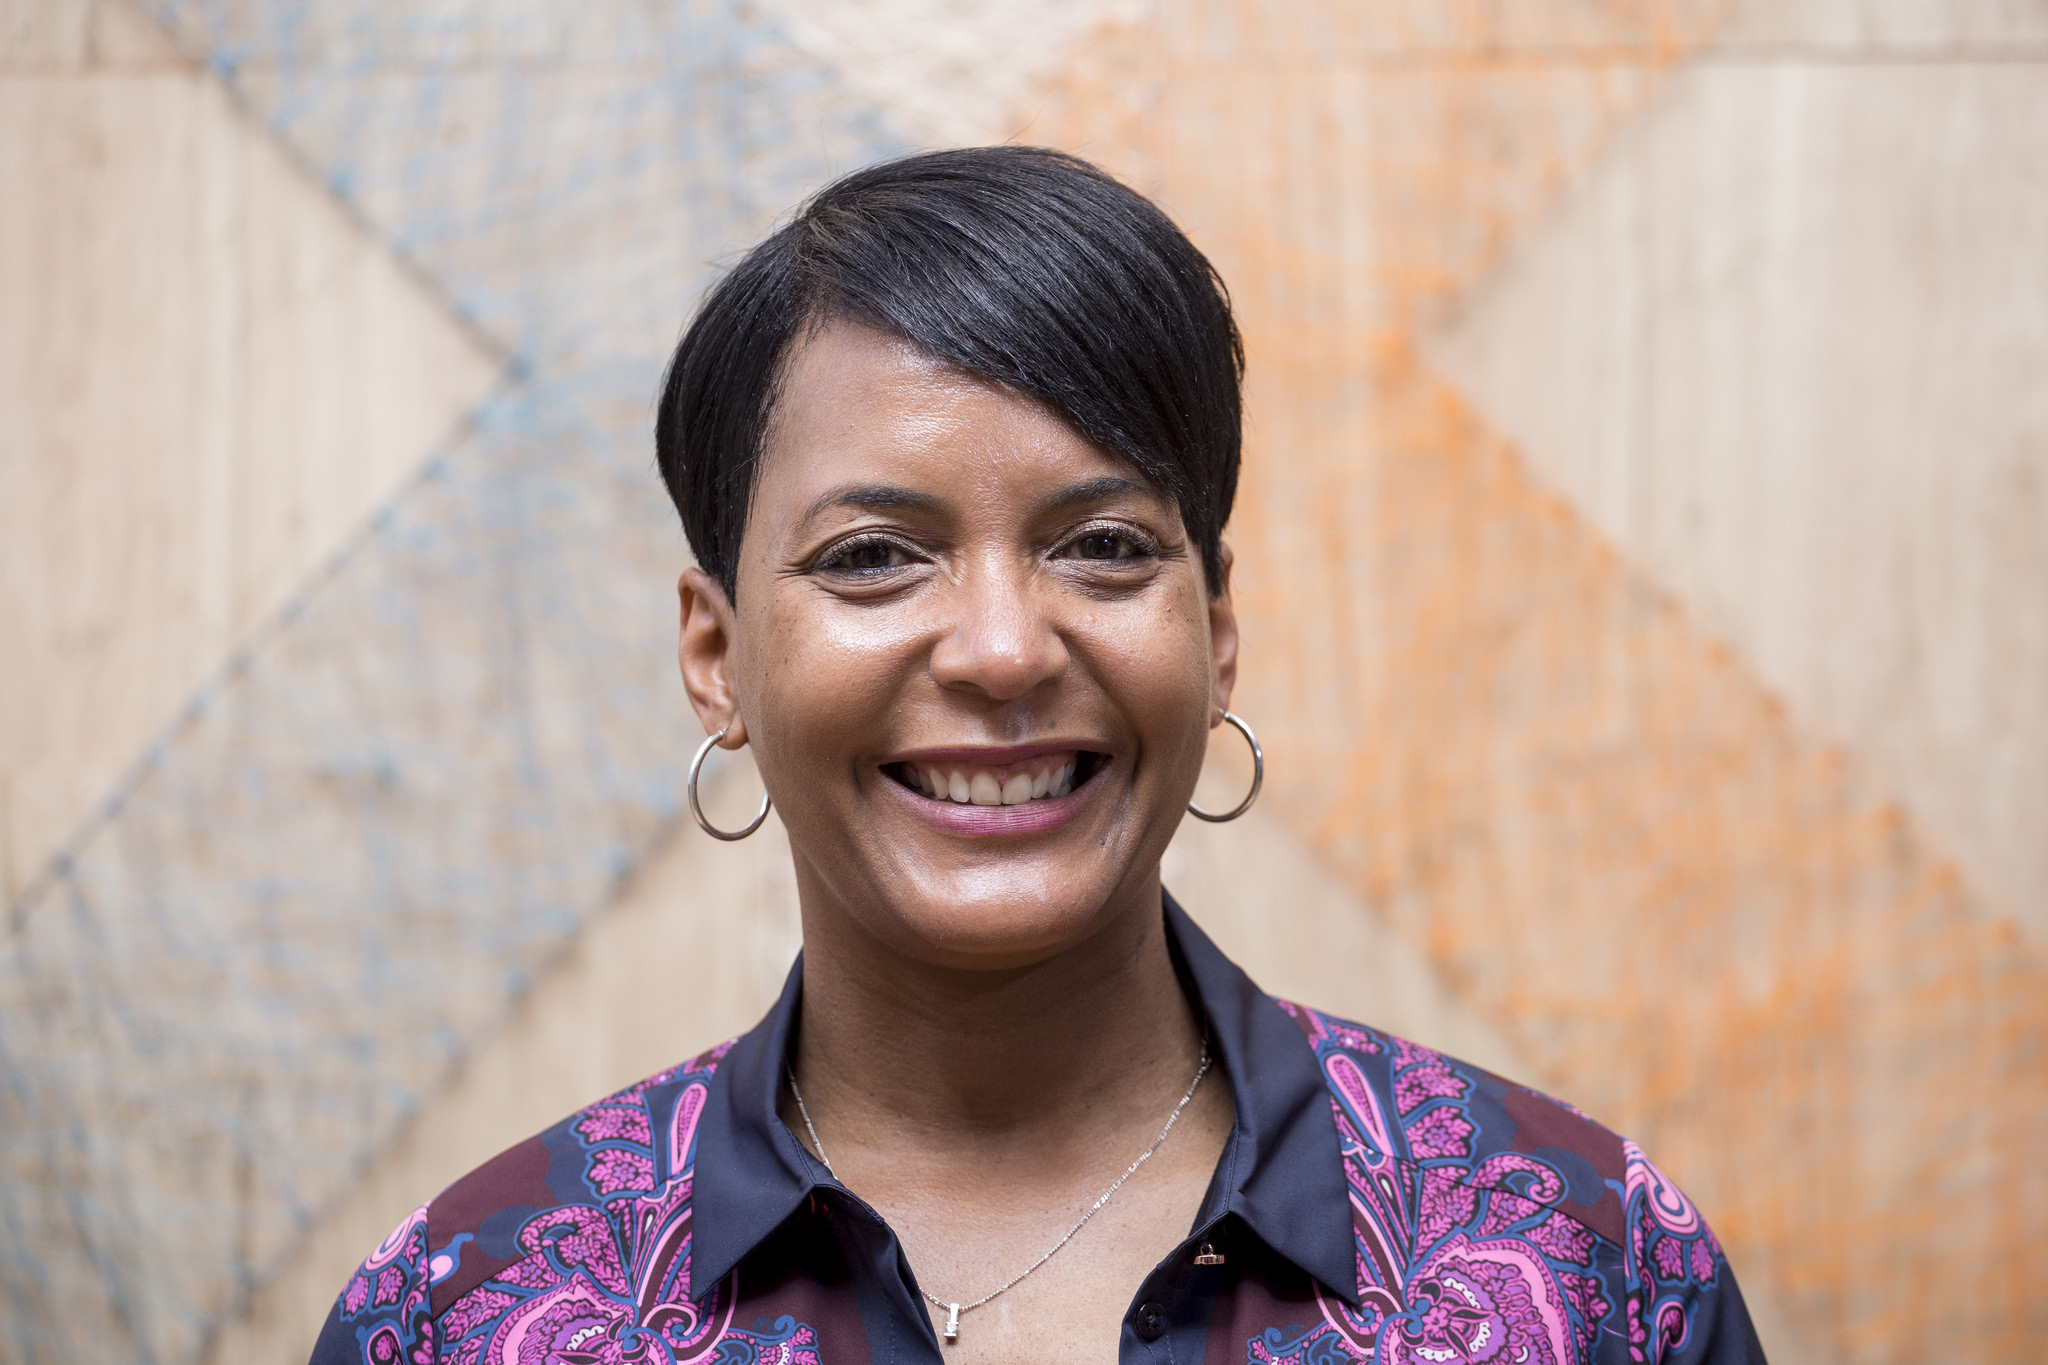 - On May 9, 2017, Keisha Lance Bottoms joined us for a 2017 #VoteLocal breakfast at the Center for Civic Innovation. Keisha seeks to leverage her past work as a judge and city council person to enhance our communities in Atlanta.CURRENT POSITION:City of Atlanta Council Member